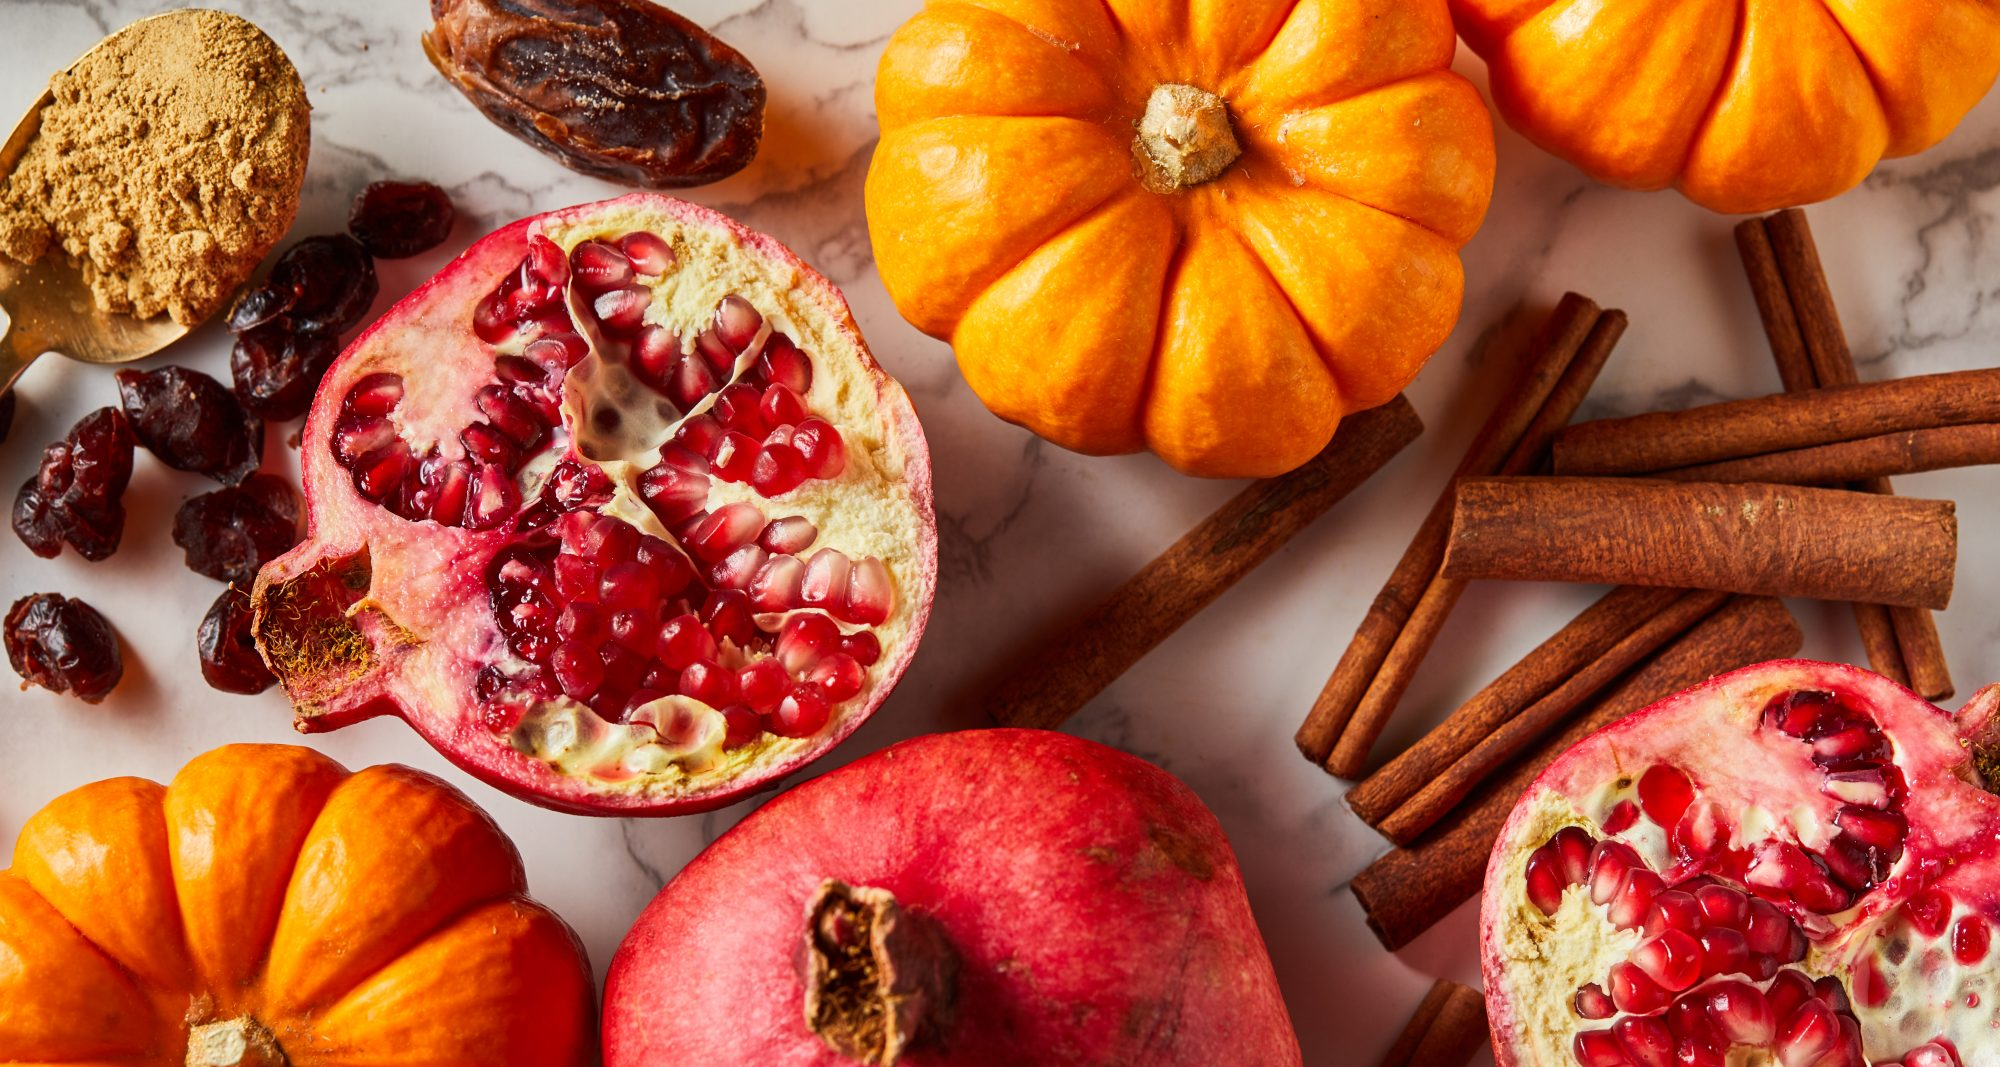 6 Seasonal Superfoods To Enjoy This Fall